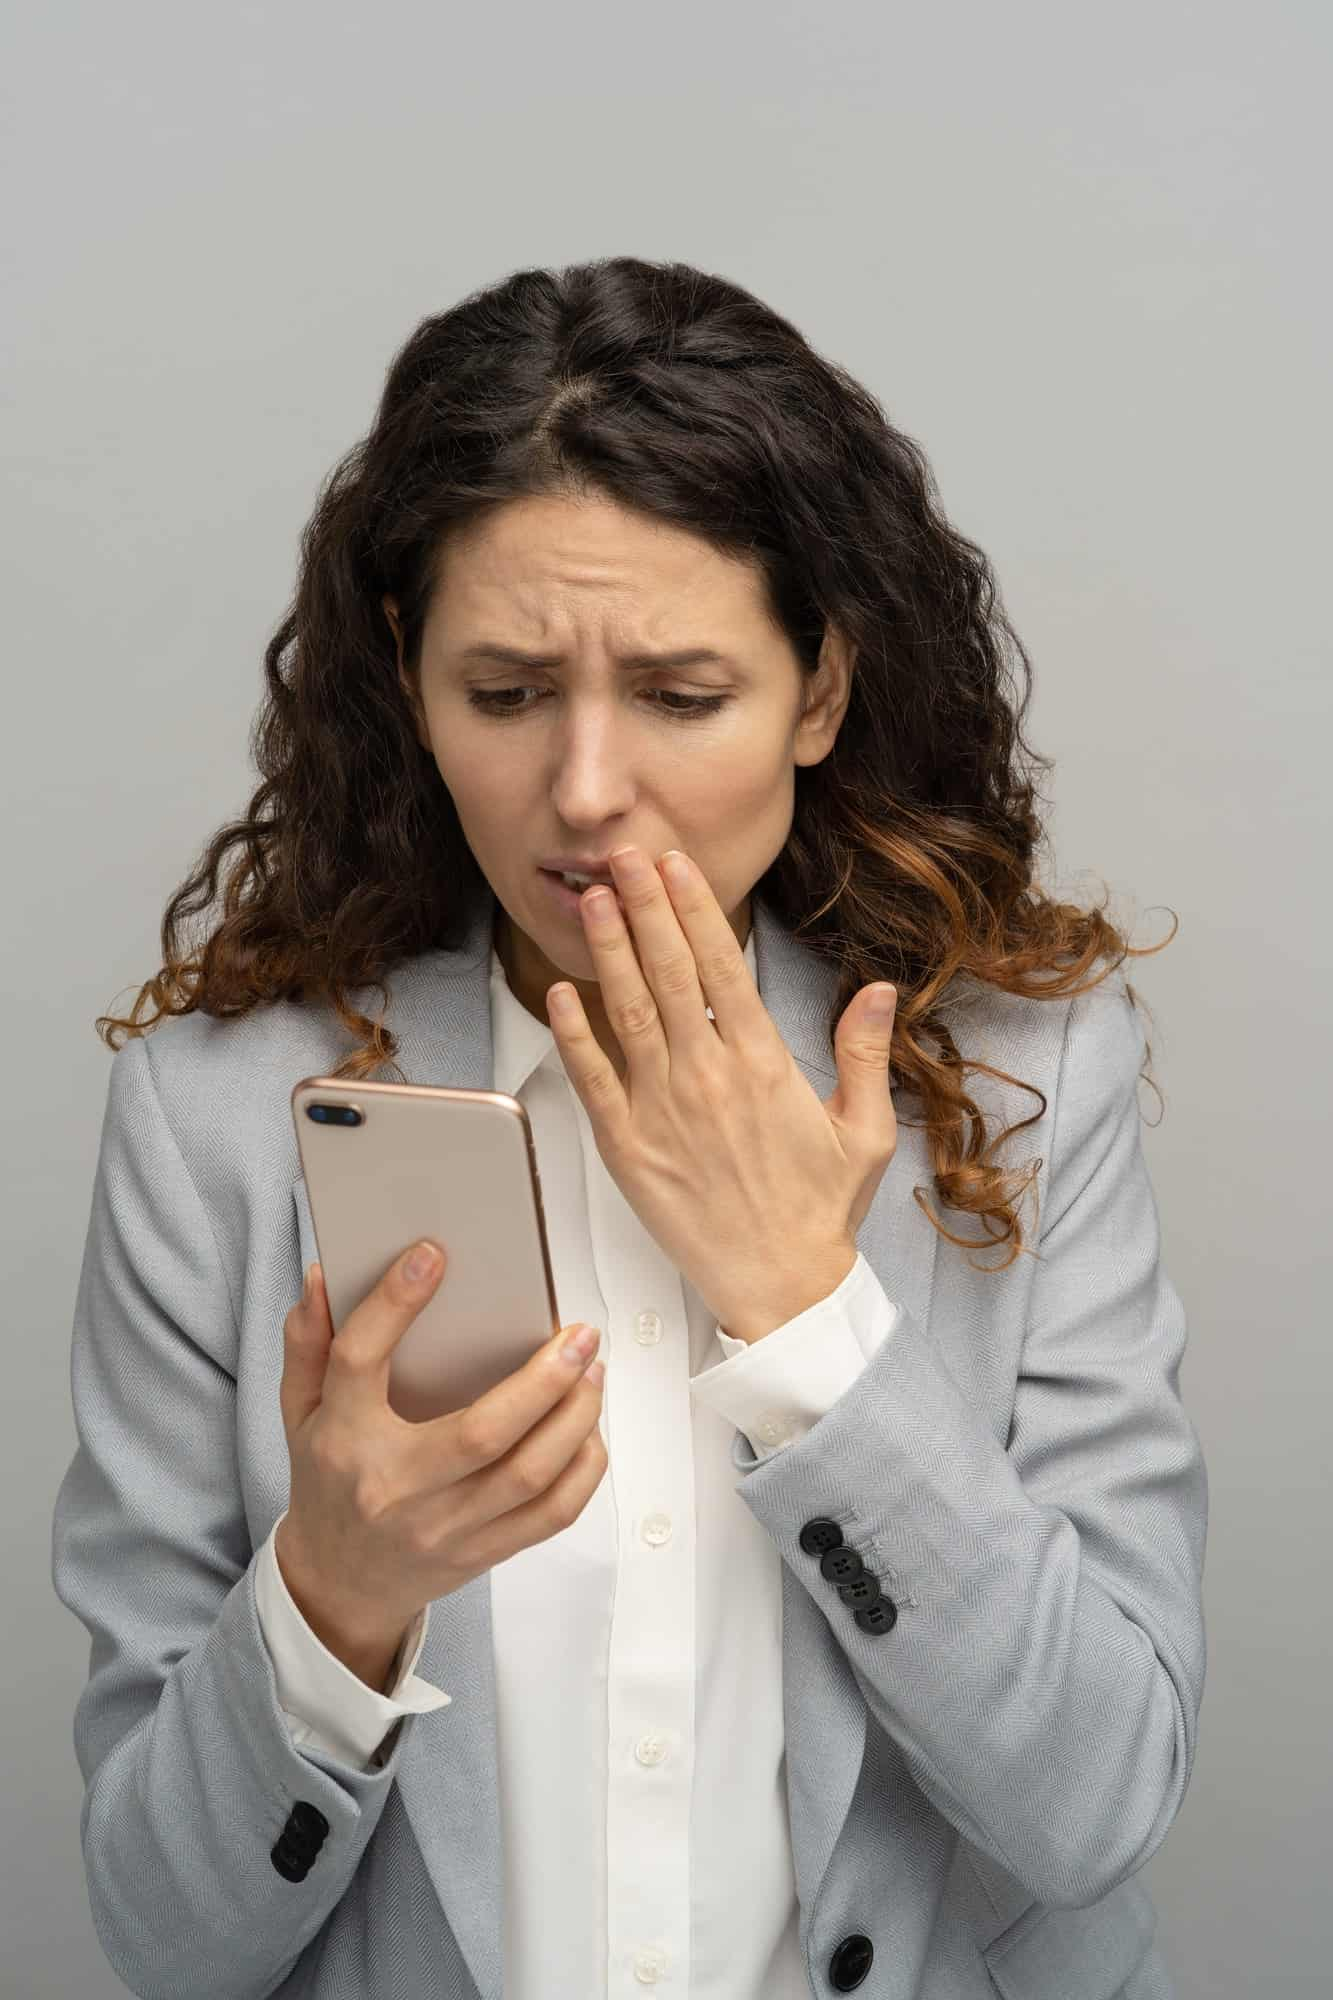 Frustrated shocked business woman or office worker looking at phone stunned with bad negative news